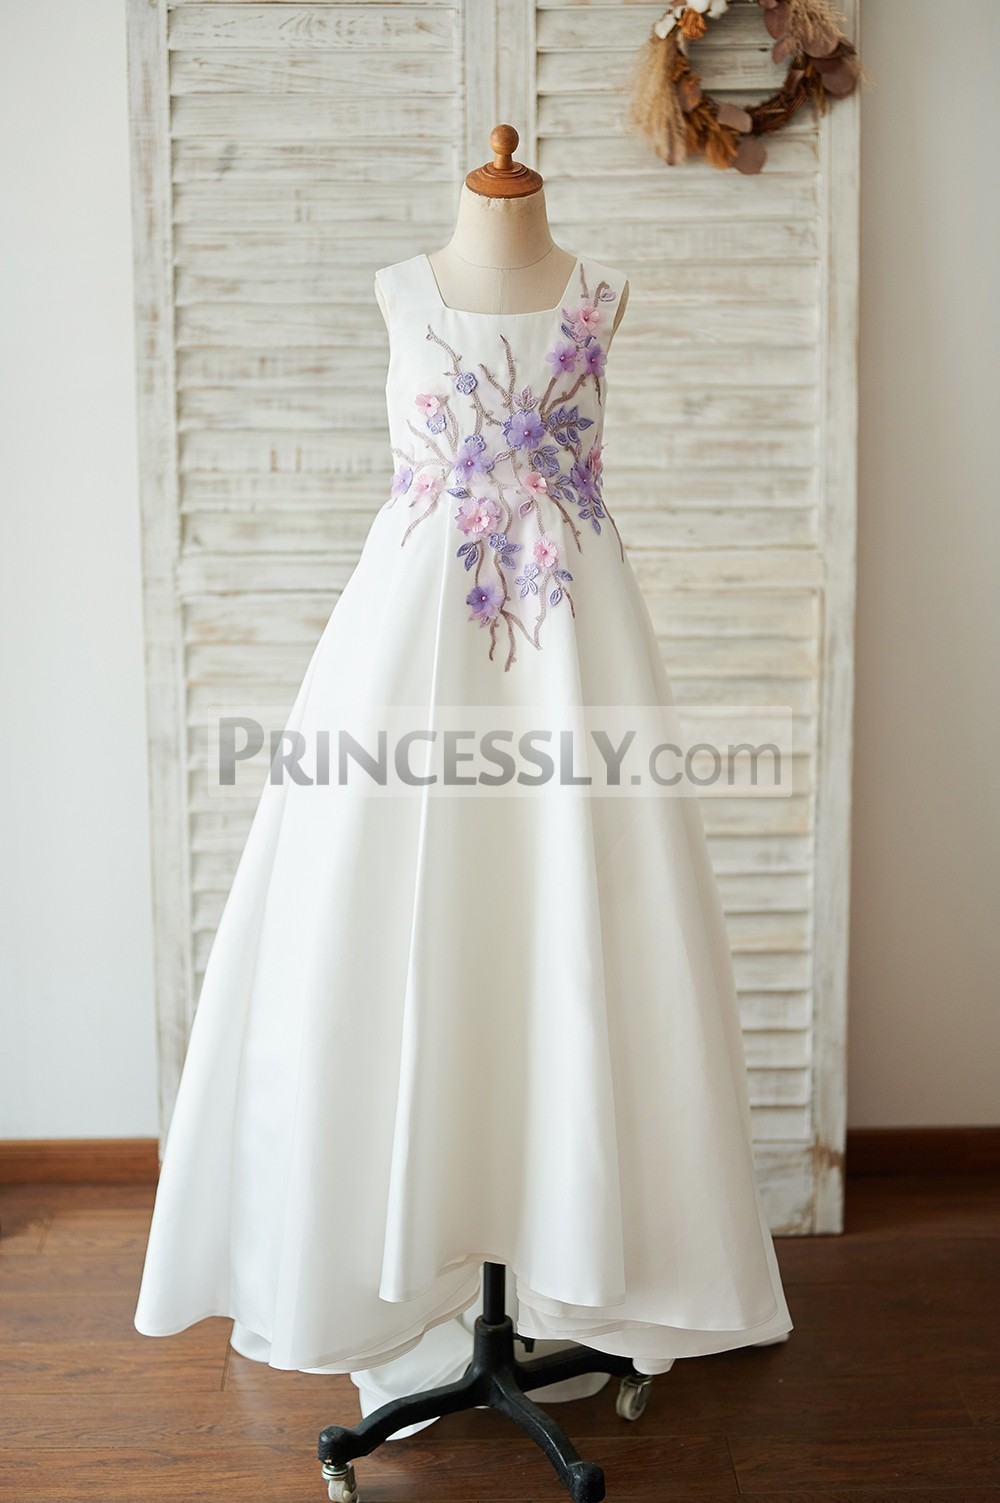 Princessly.com-K1003922-Square Neck Ivory Satin Wedding Flower Girl Dress with Embroidery Lace-31